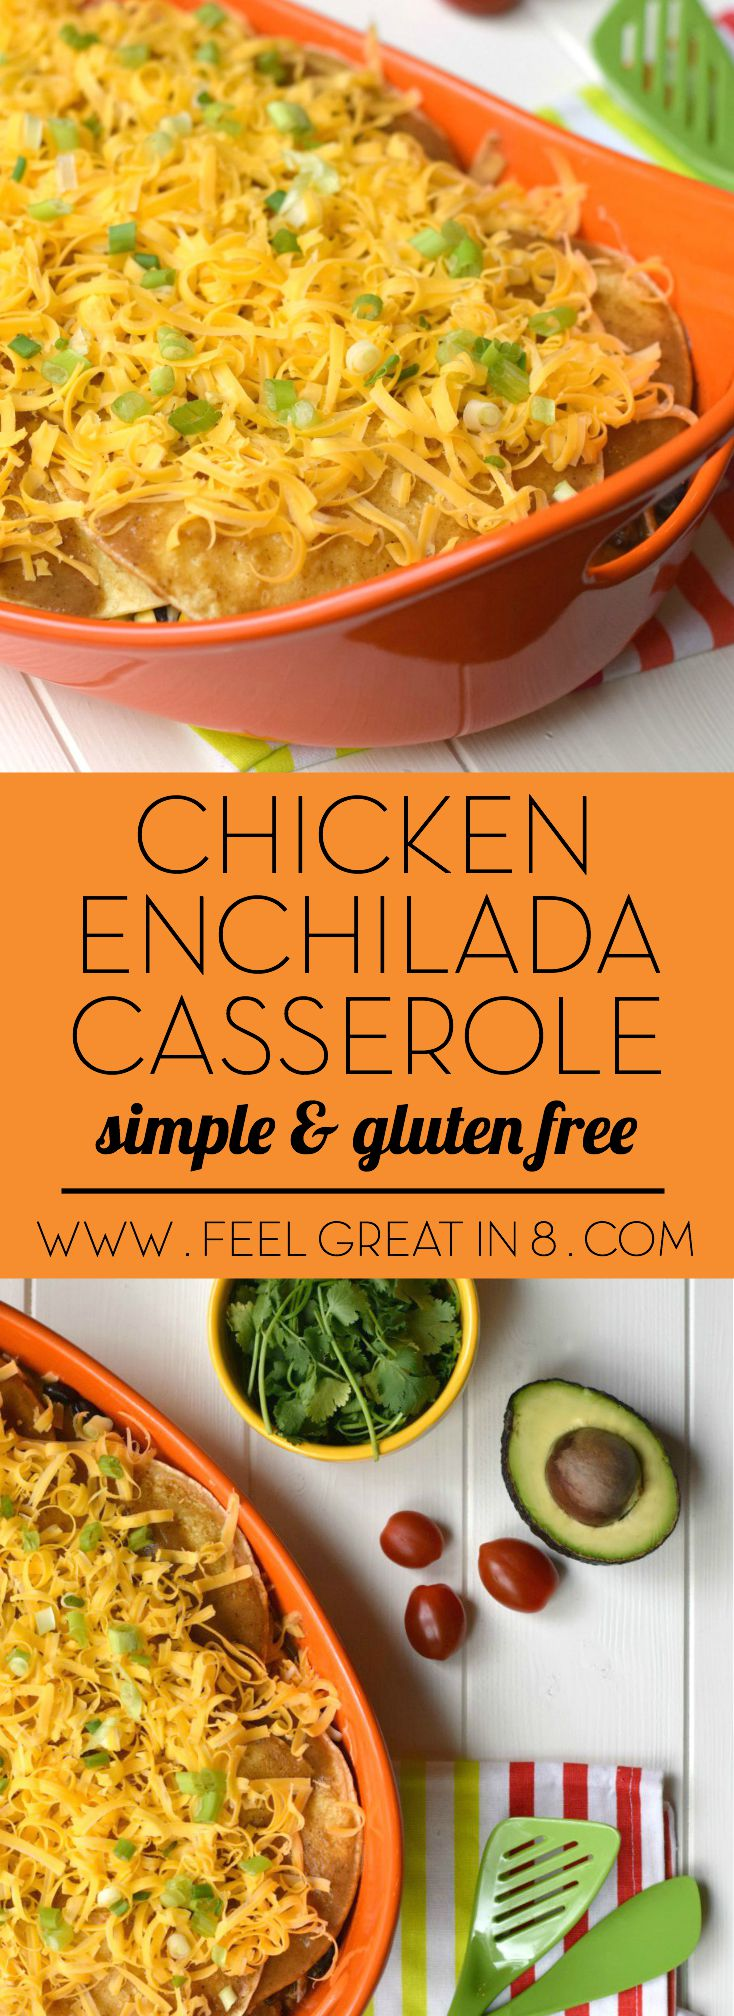 This Chicken Enchilada Casserole recipe is simple to make, gluten-free and super delicious! It's sure to be a healthy family favorite!|Feel Great in 8